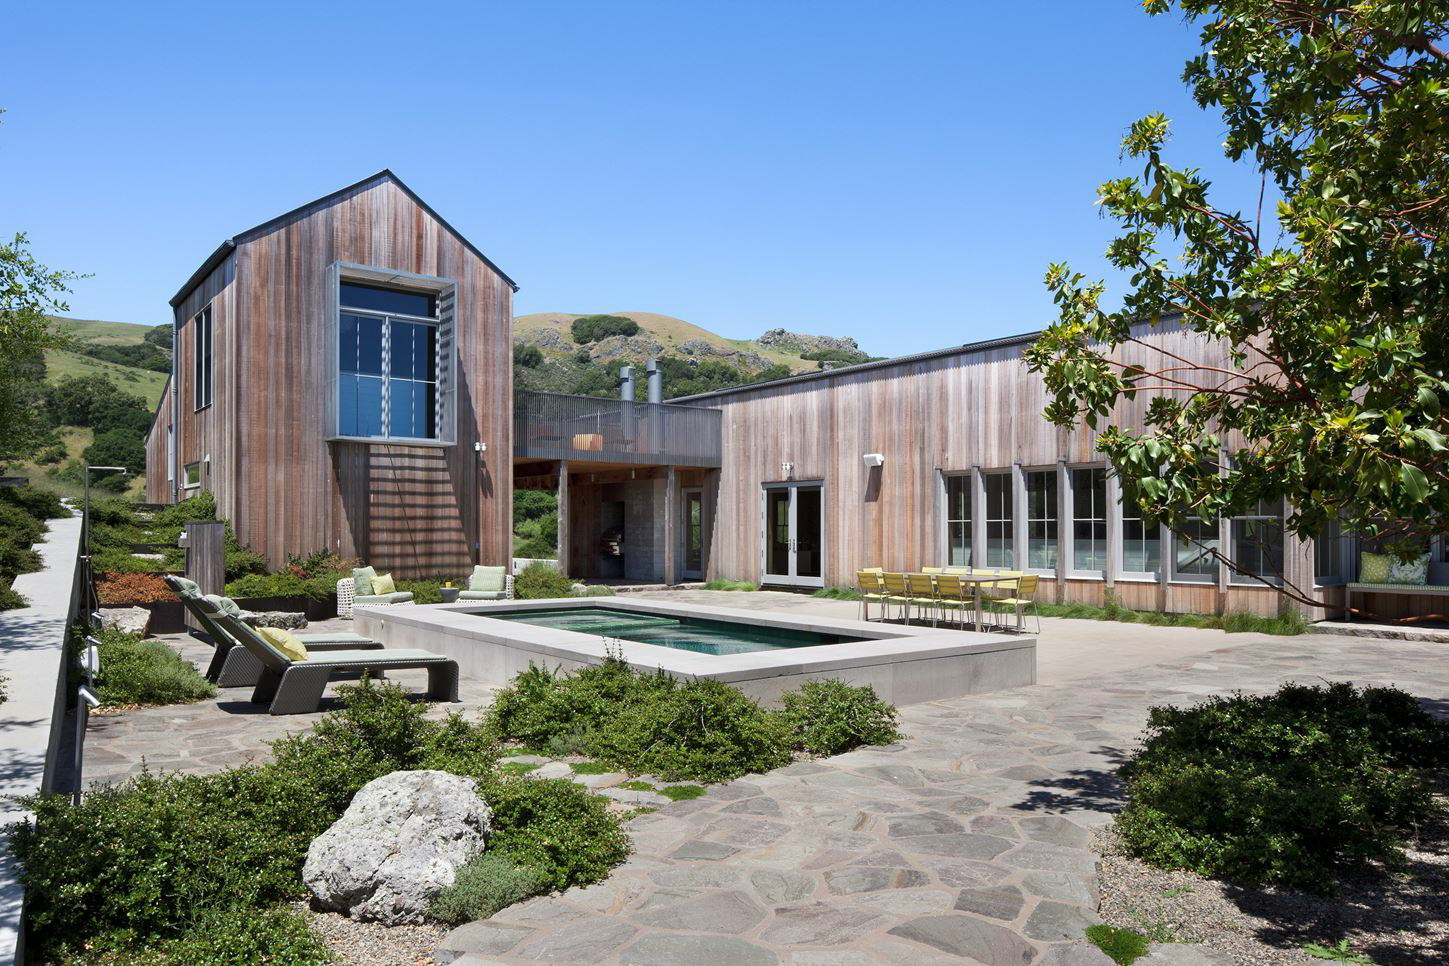 West Marin Ranch by Turnbull Griffin Haesloop Architects and Lotus Bleu Home Décor & Interior Design